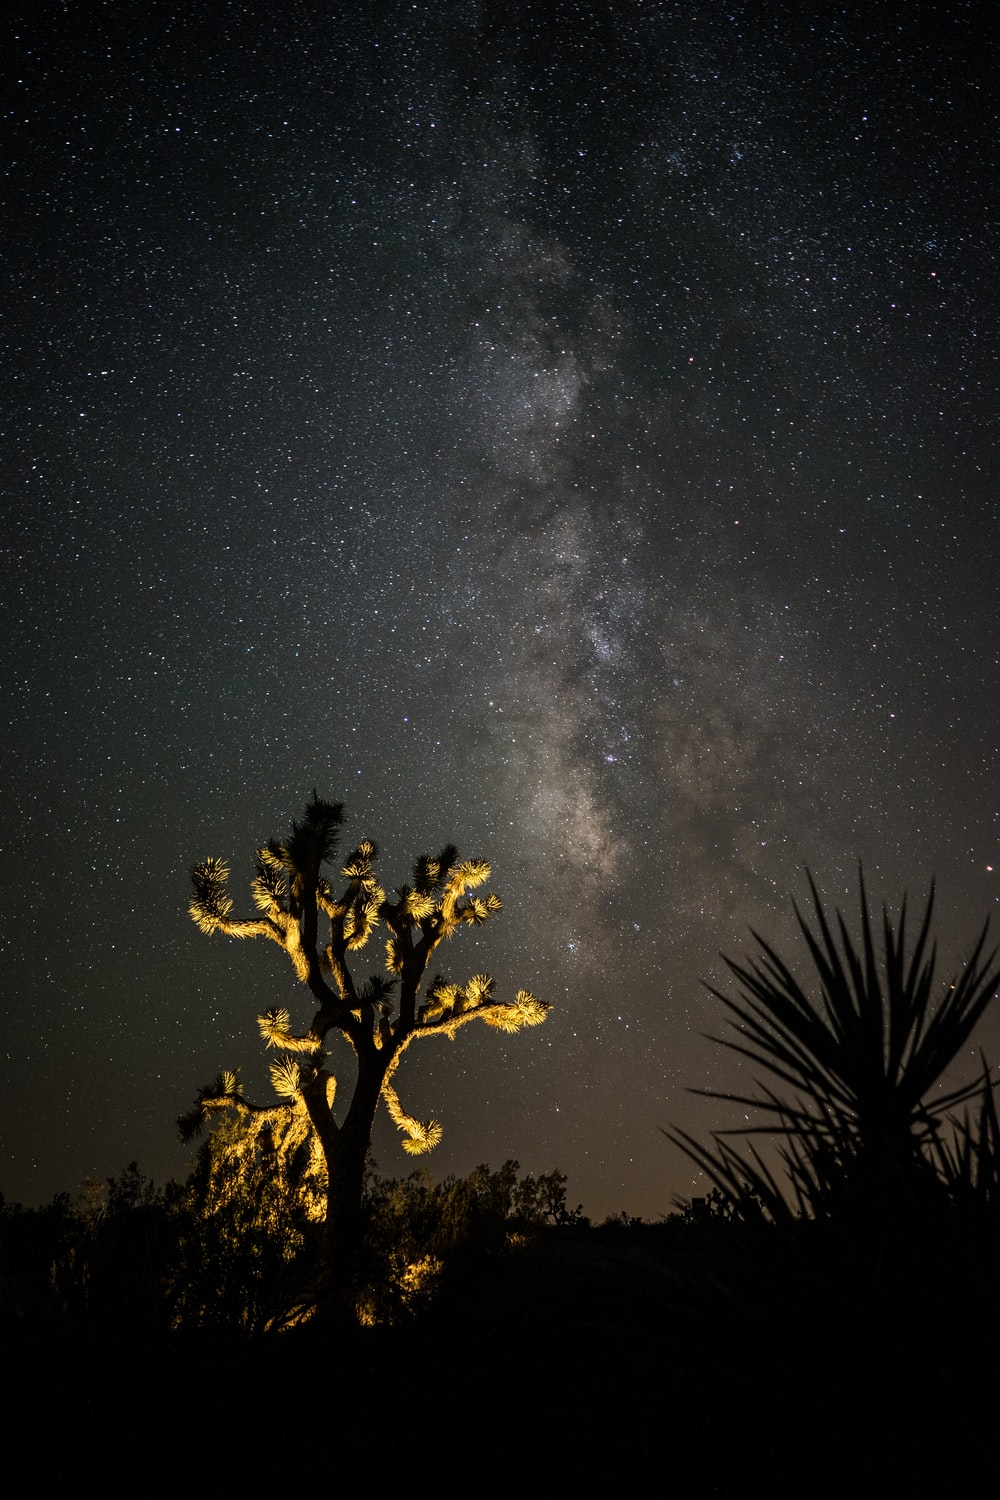 photo of a lighted tree and stars